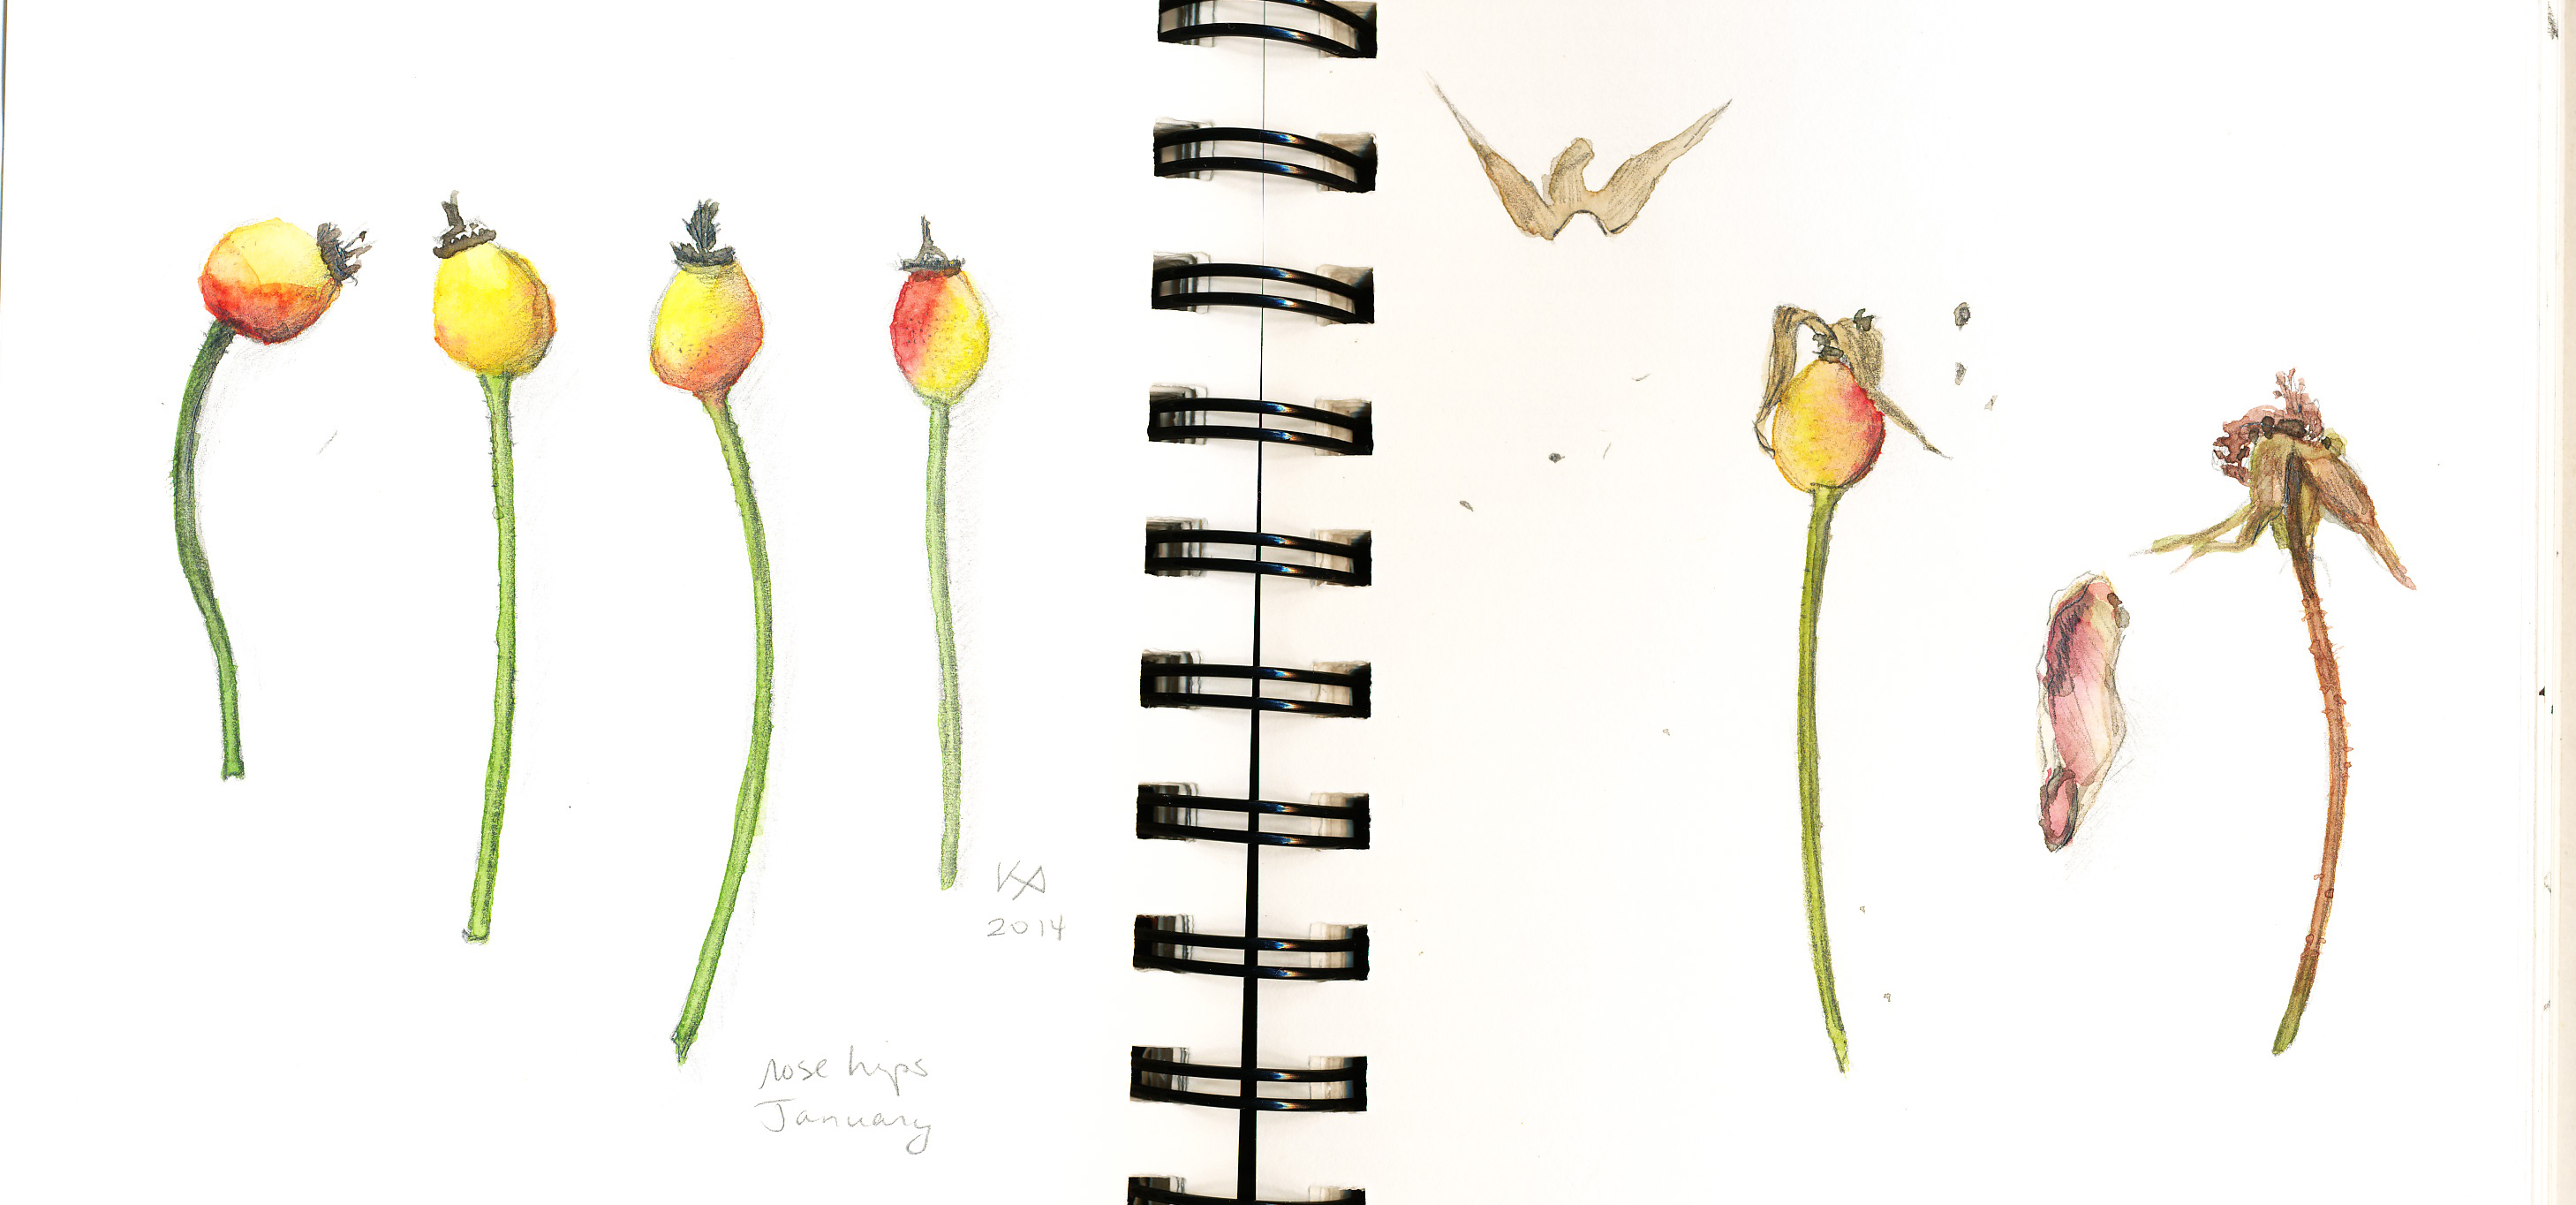 Little studies: rose hips